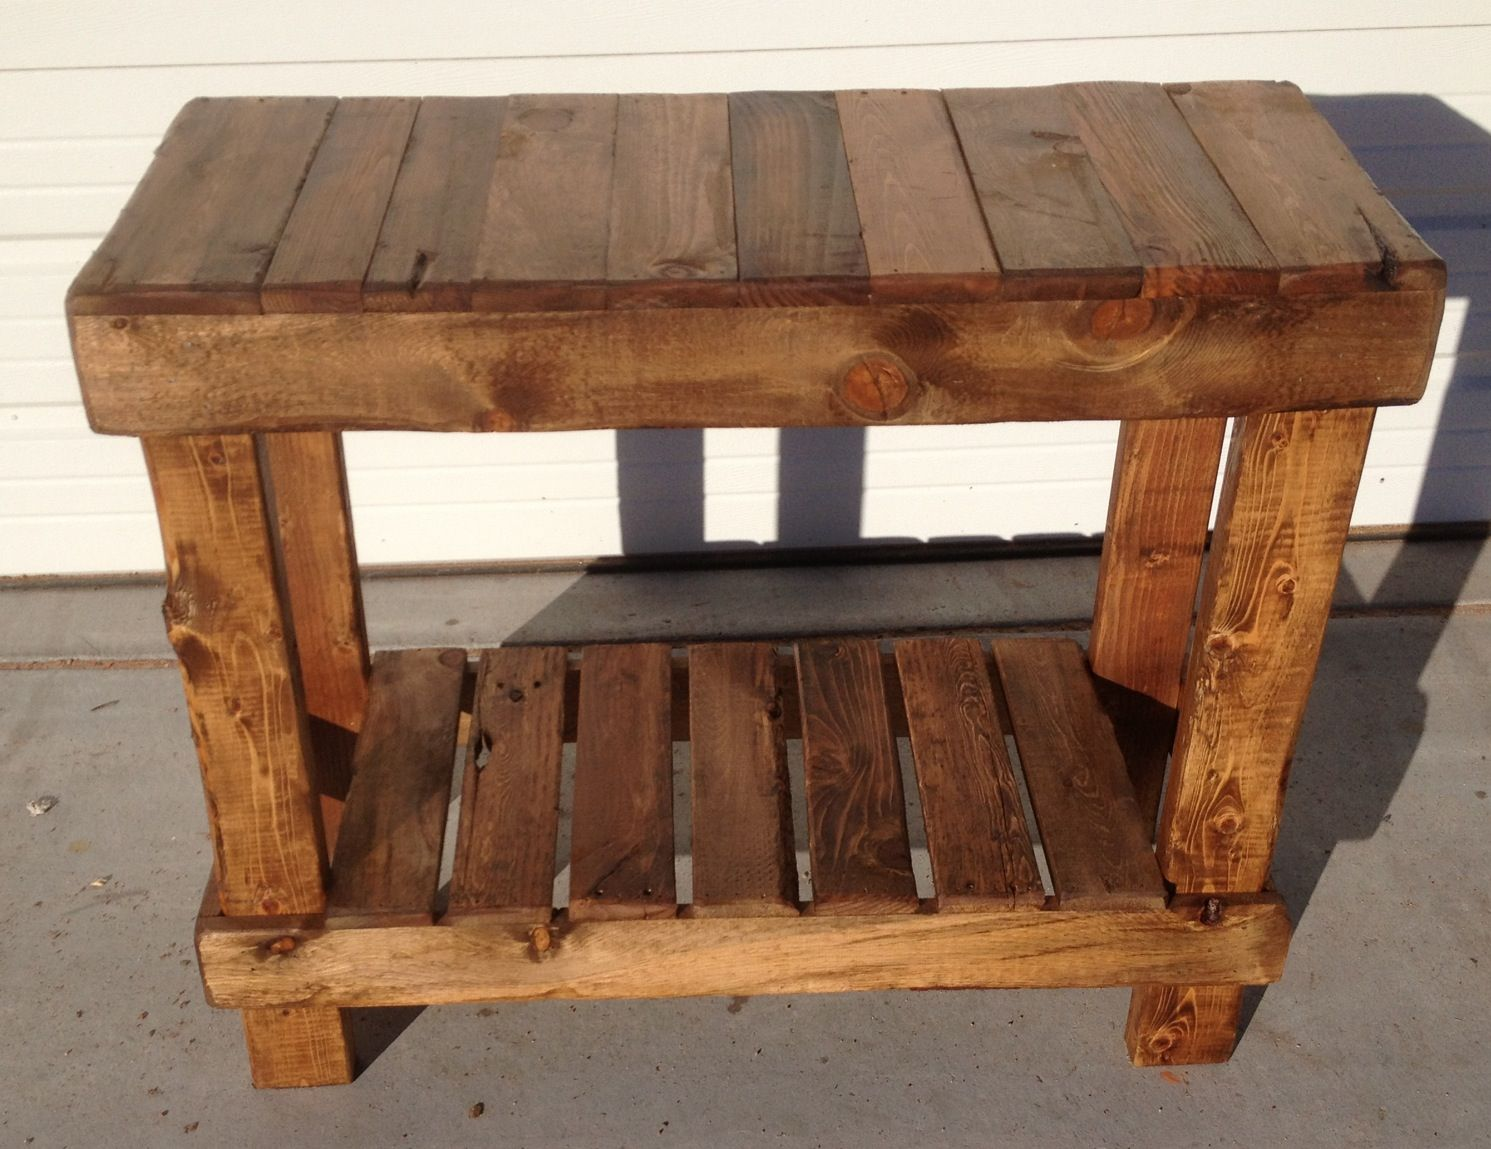 Pallet Entry Table Most Pallet Furniture Is Silly To Begin With With Few